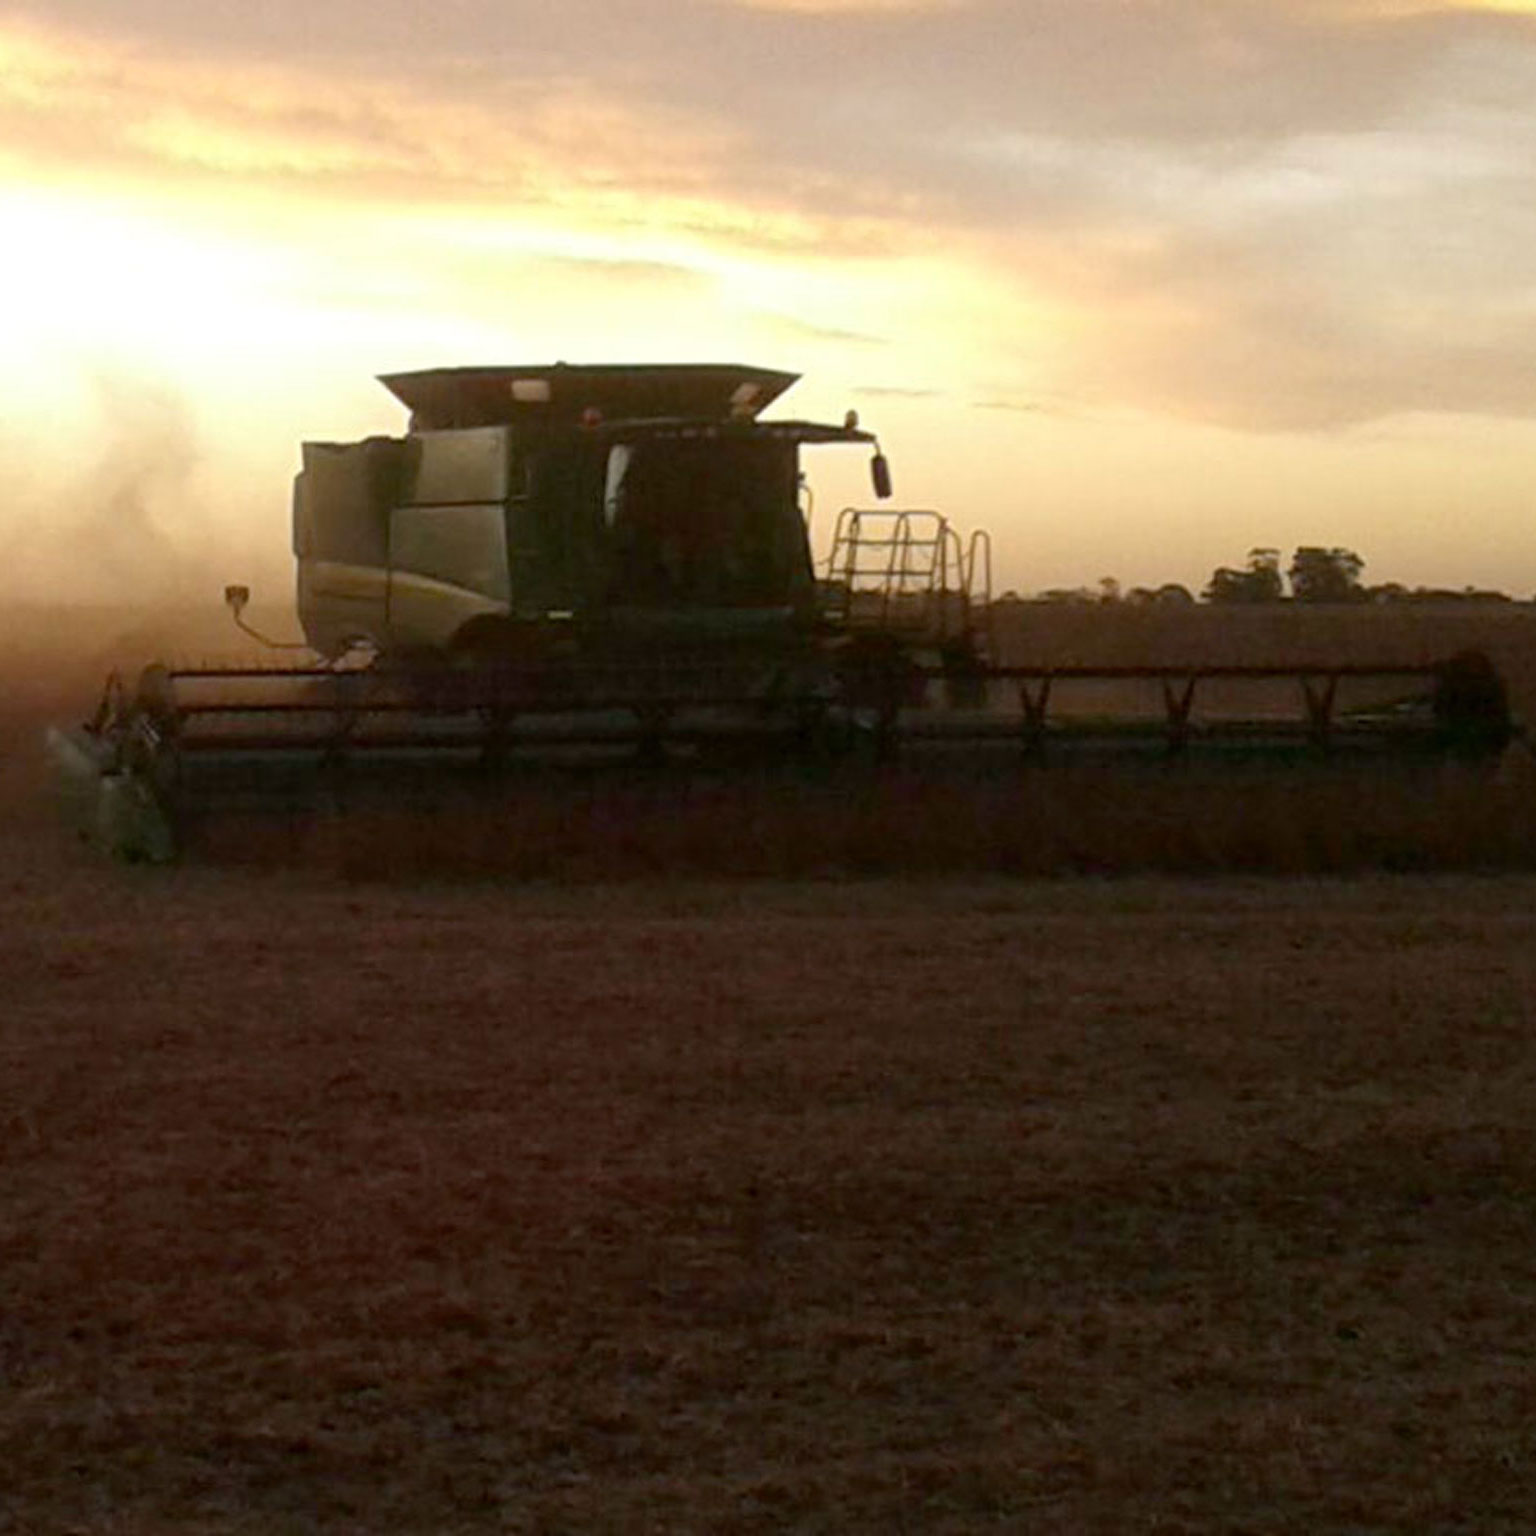 Soybean harvest as seen in Argentina.